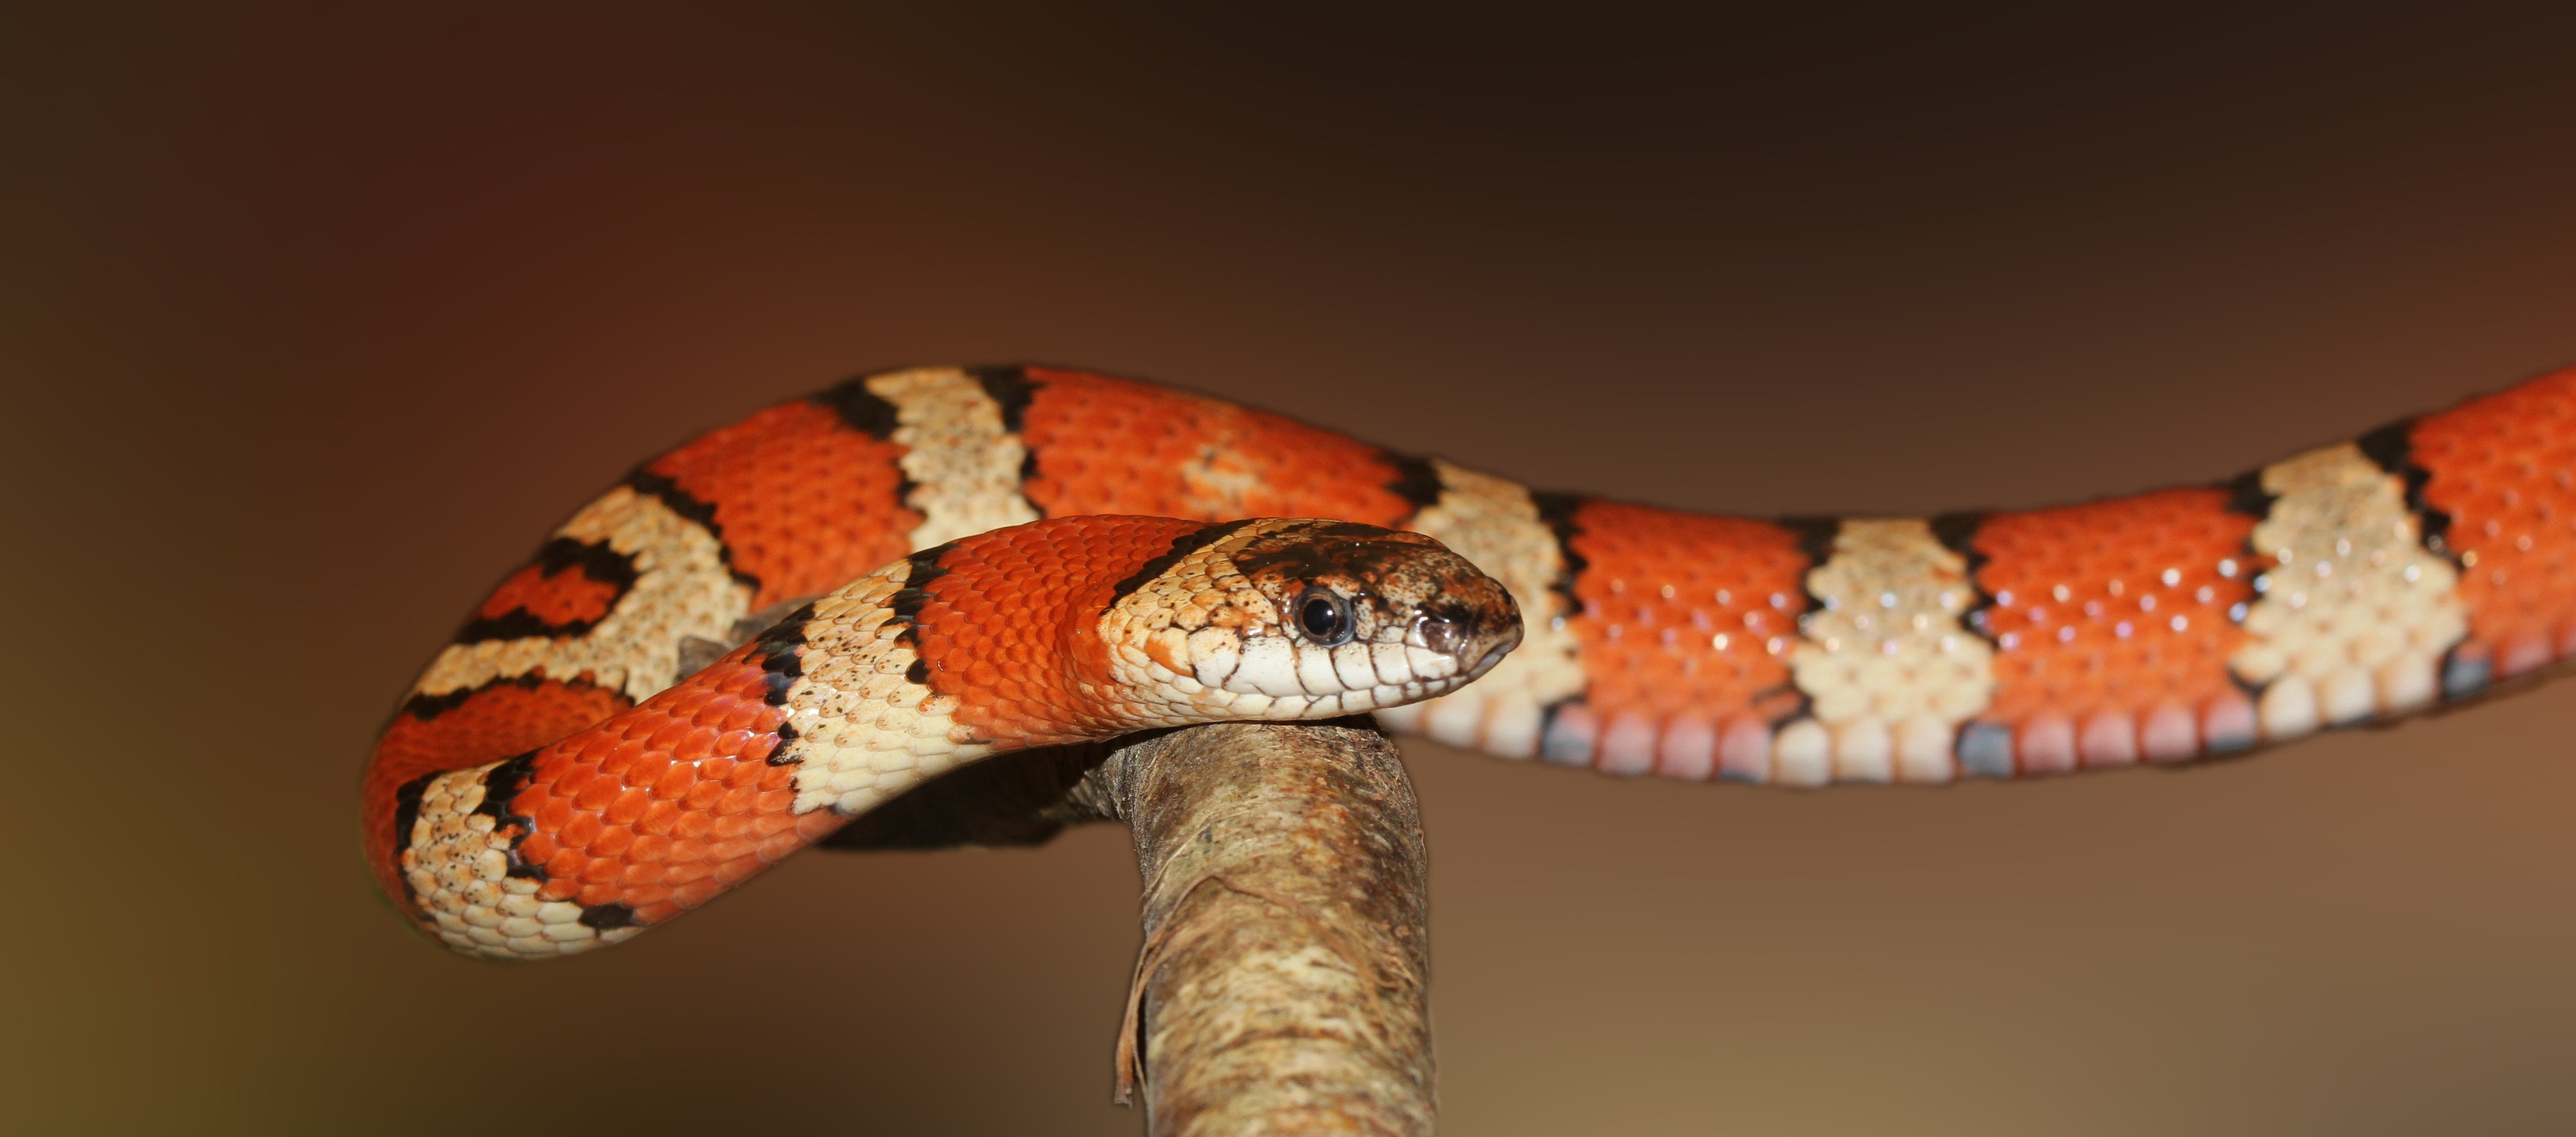 Free stock photo of reptile, attention, snake, constrictor